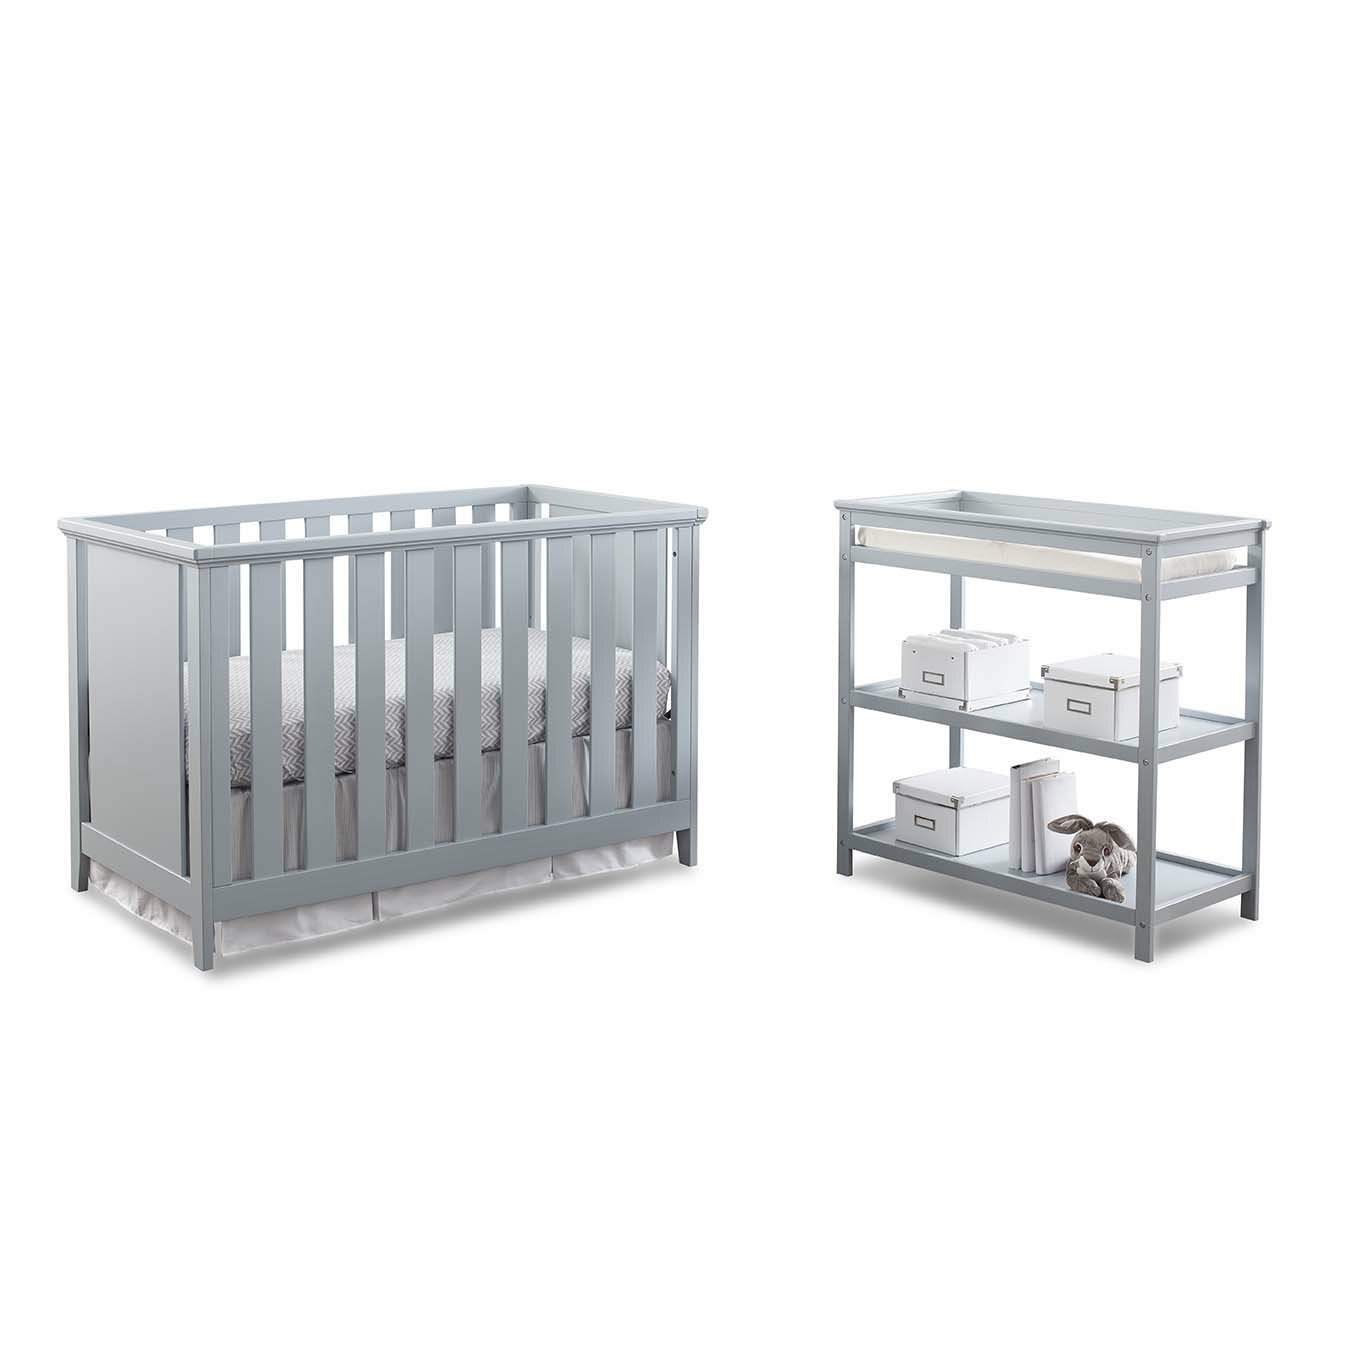 Crib for sale halifax - Westwood Design Casey 3 1 Convertible 2 Piece Crib Set